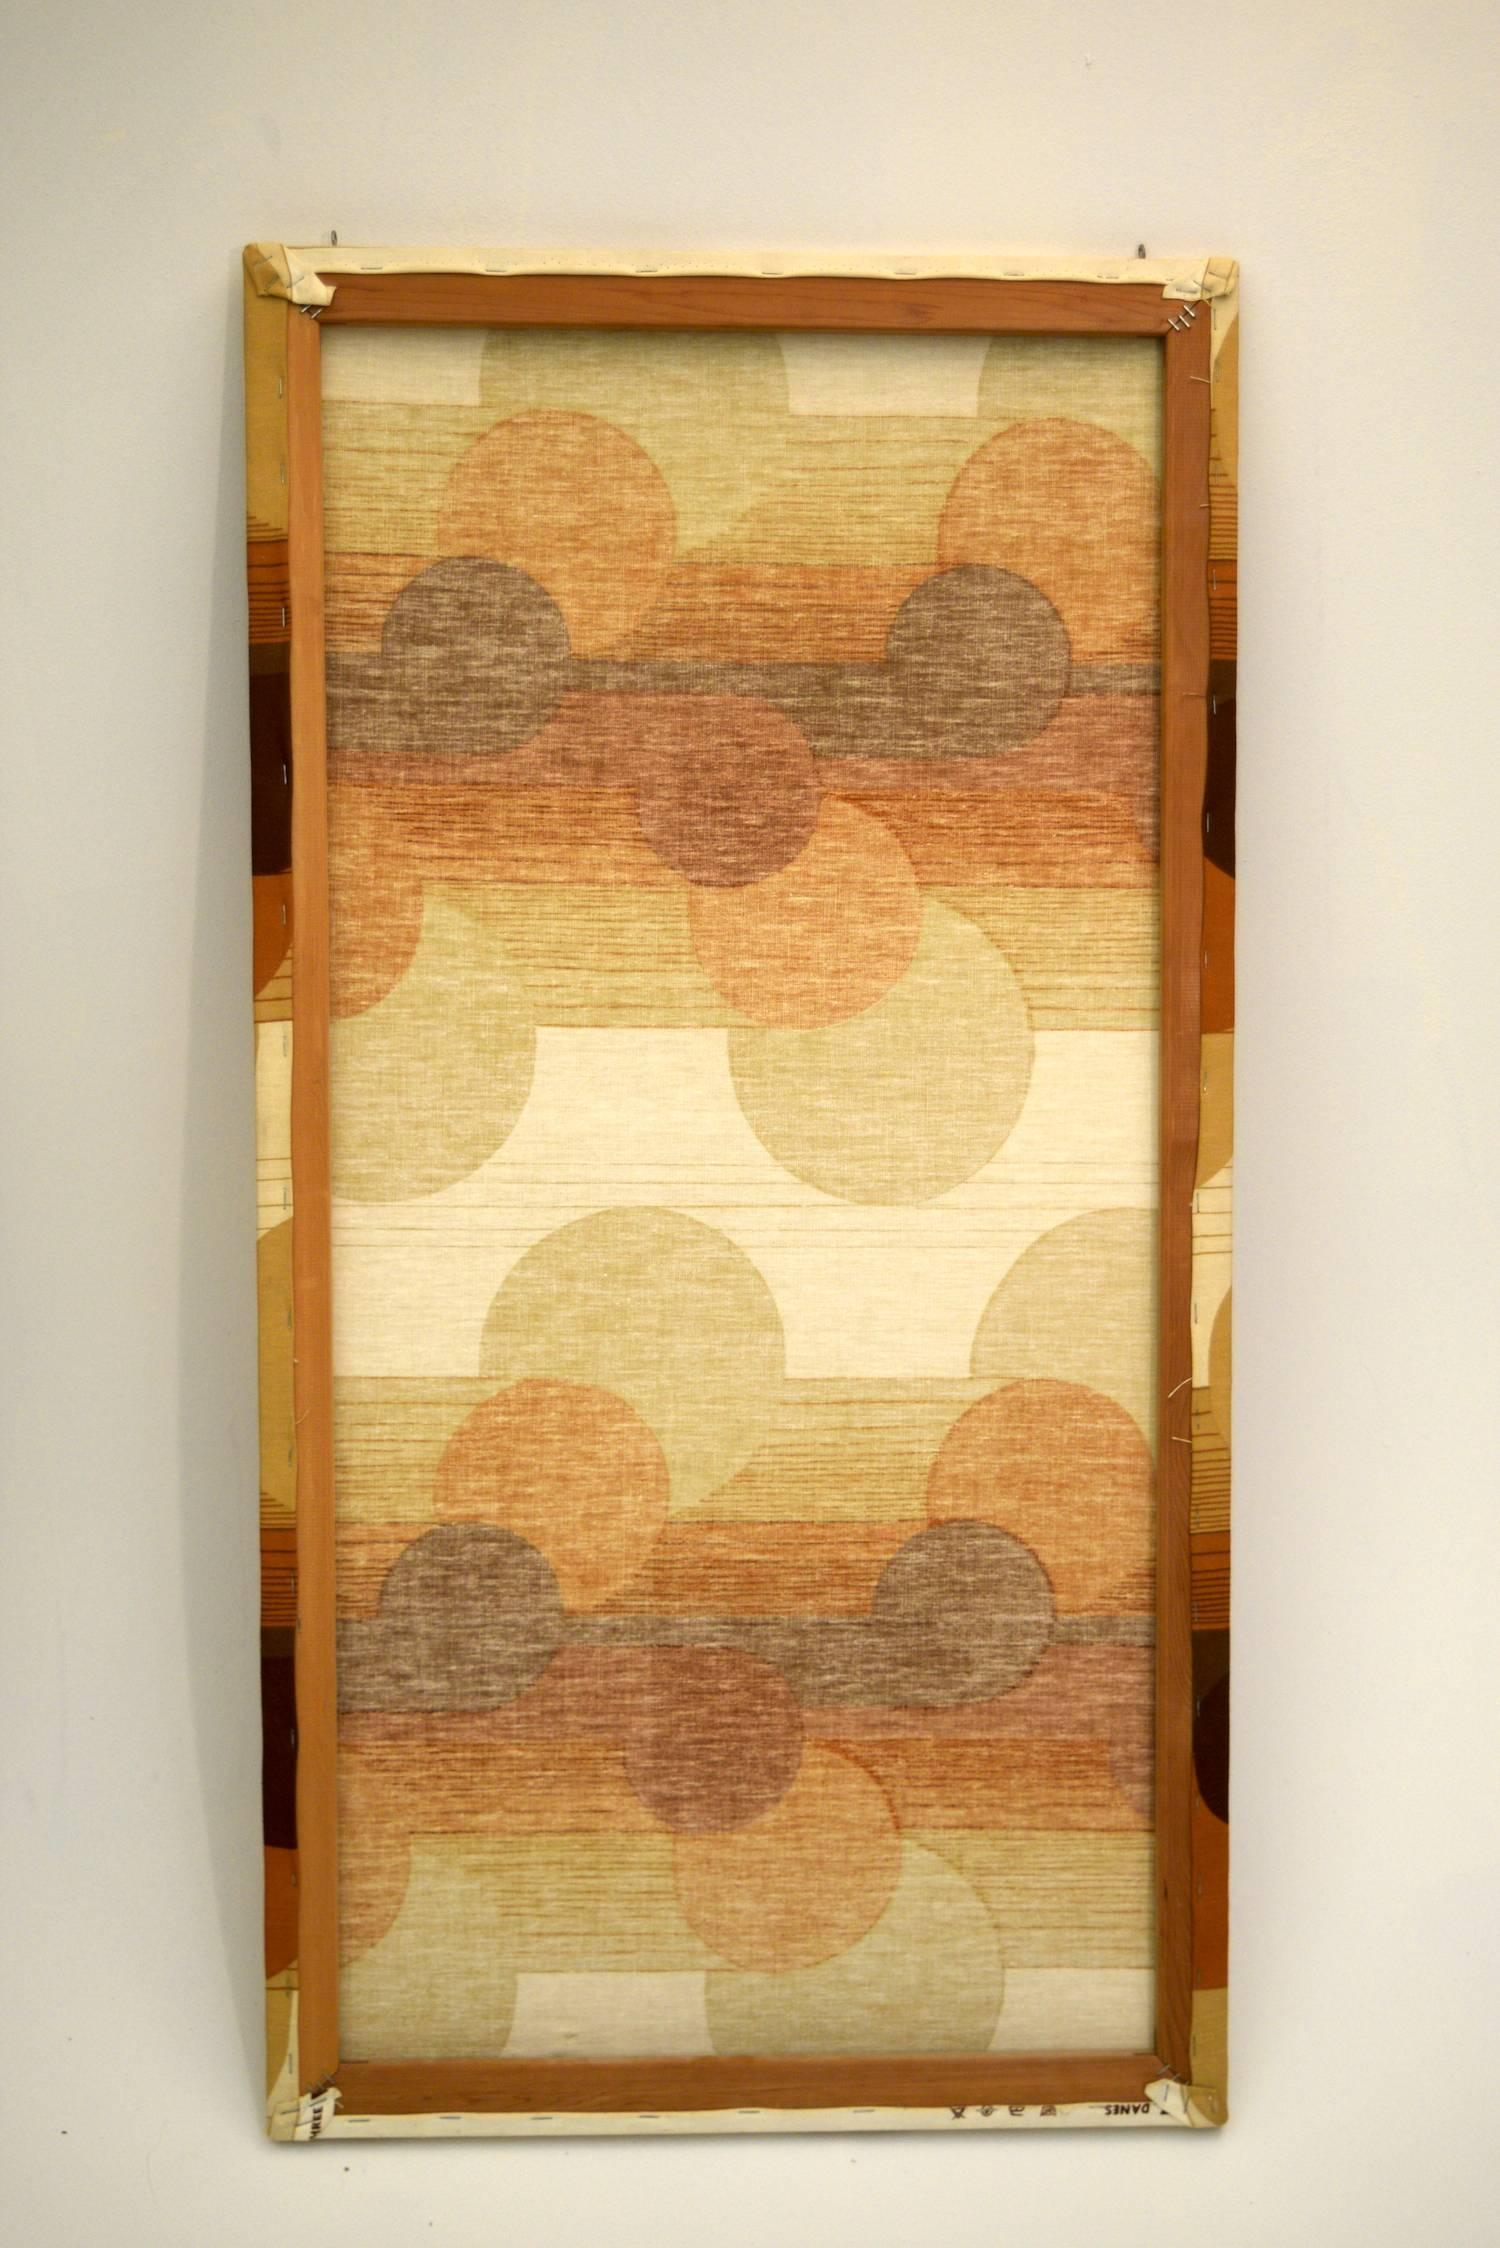 1960s Op Art Wall Covering Panels by Three by Danes For Sale at 1stdibs